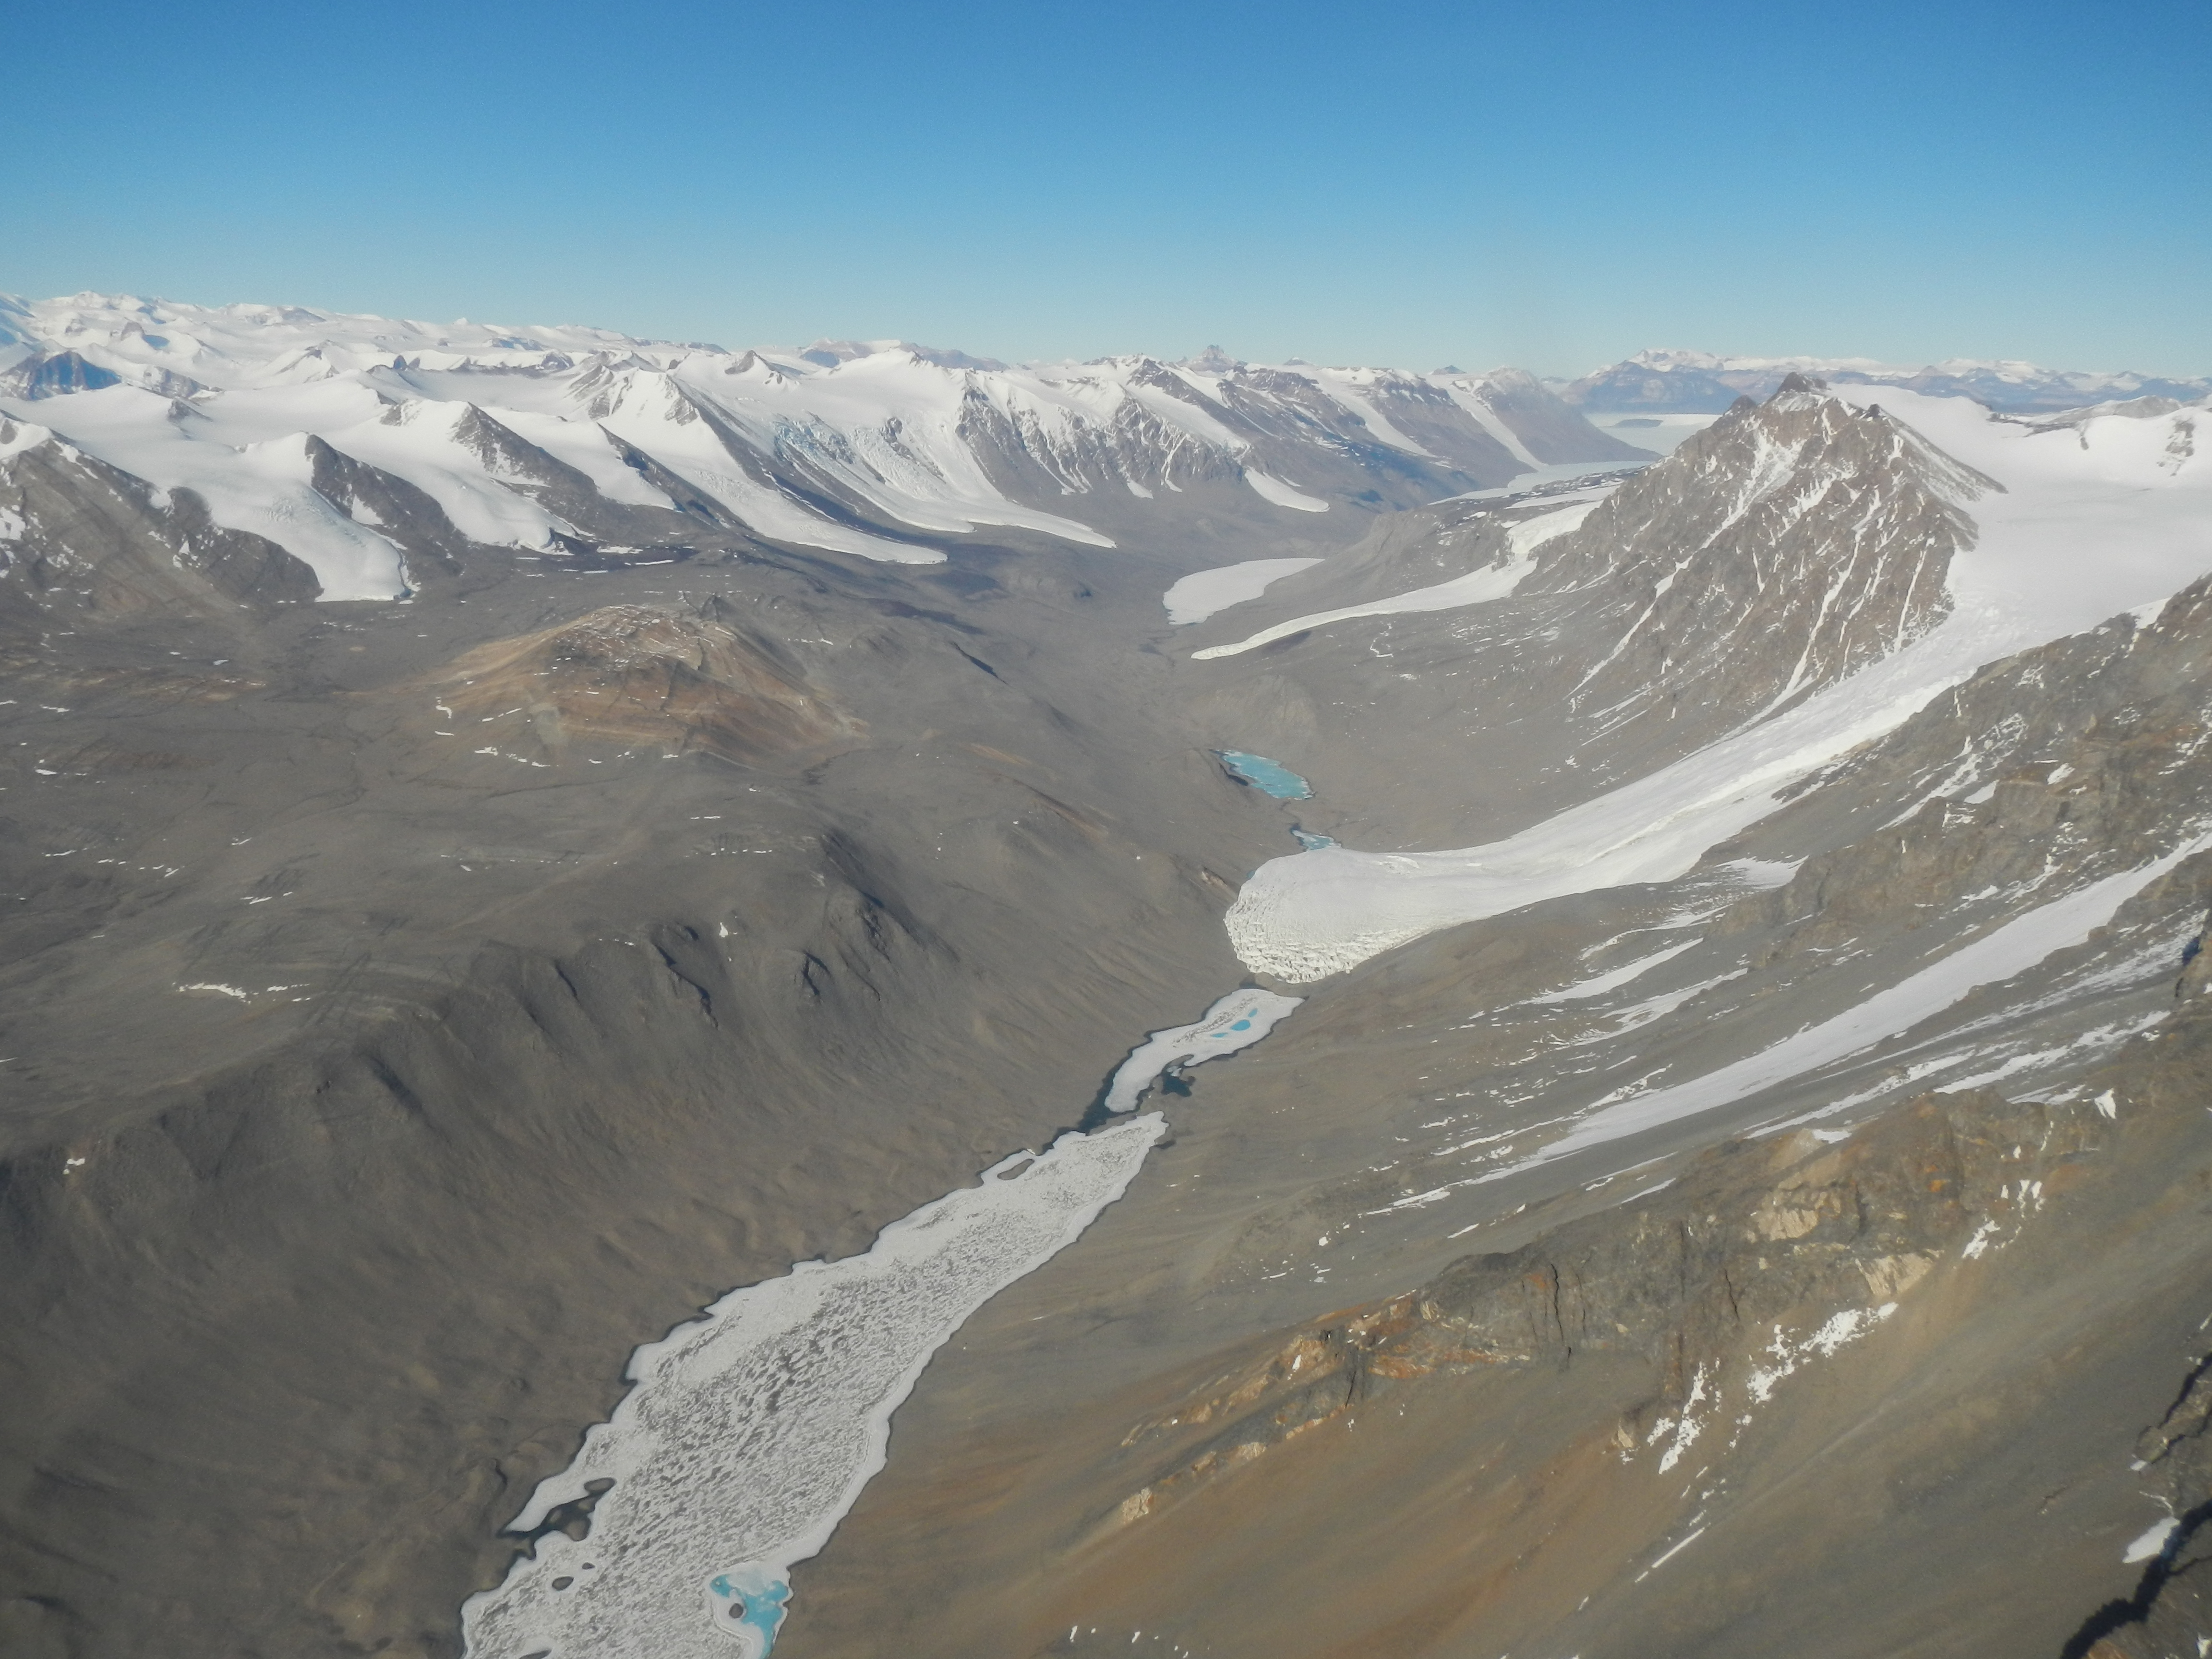 Overview of Taylor Valley, Antarctica